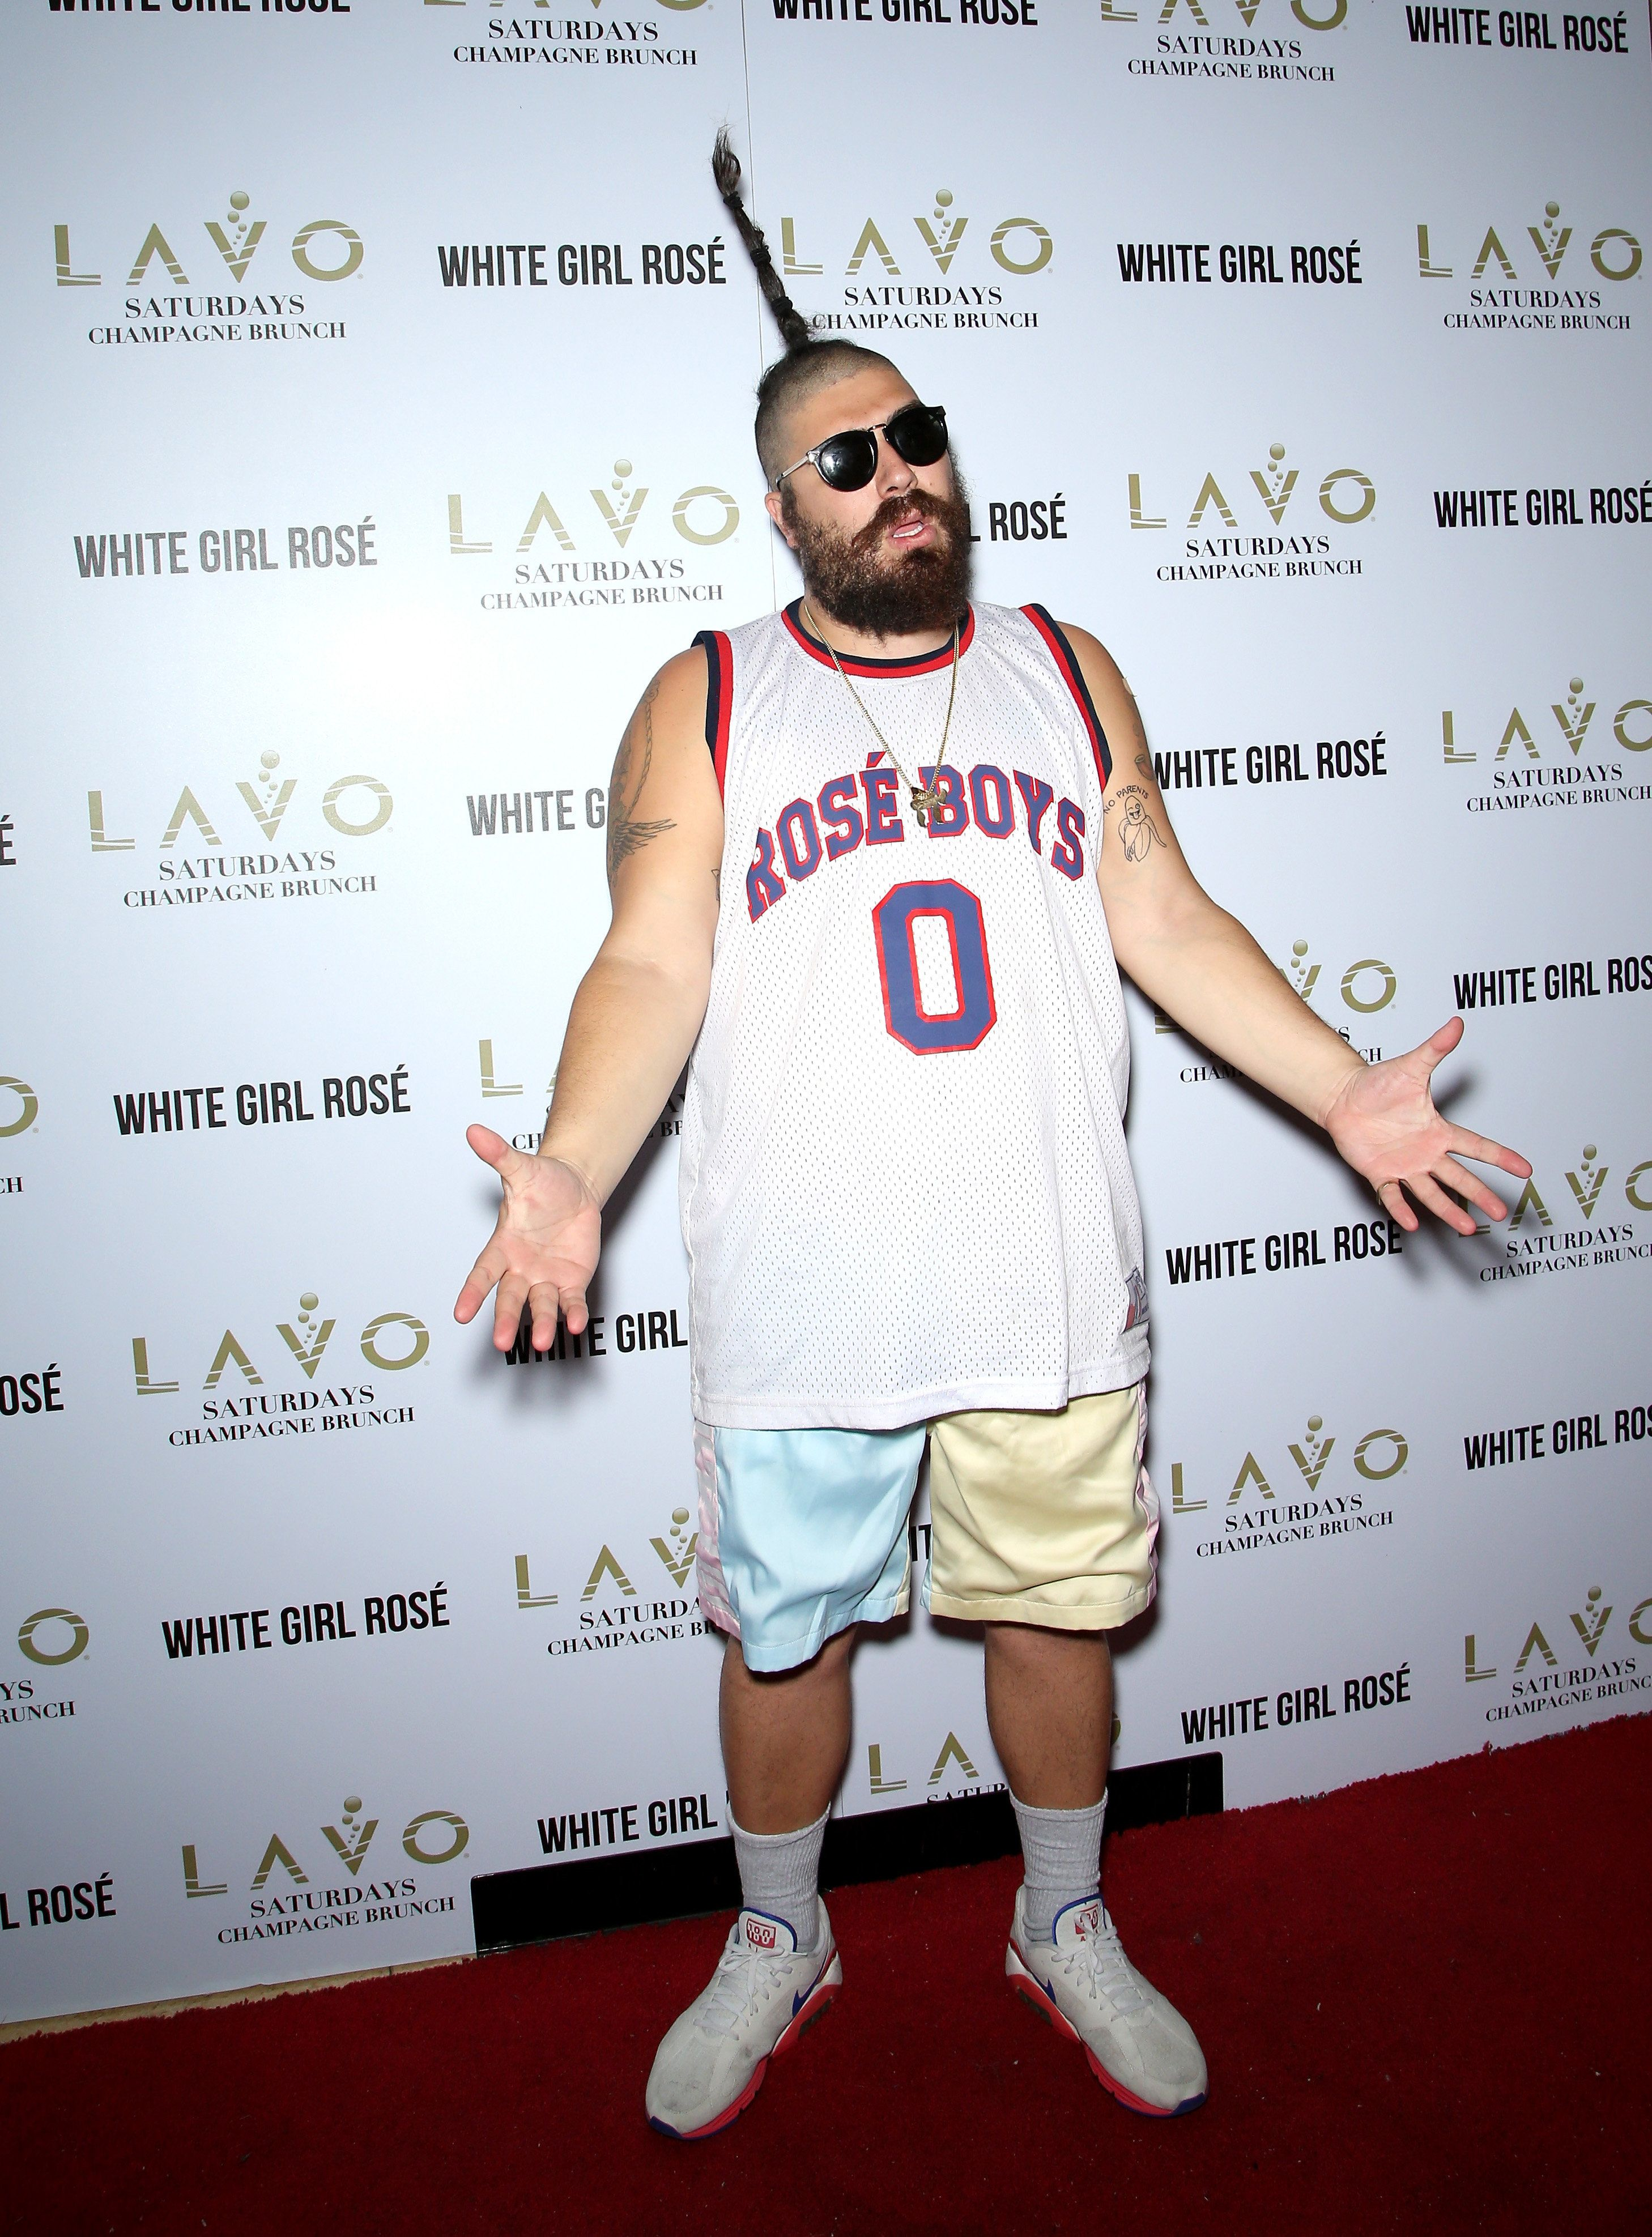 LAS VEGAS, NV - OCTOBER 31:  Entertainer Josh 'The Fat Jew' Ostrovsky attends a Halloween Champagne brunch at the Lavo Restaurant at The Palazzo Las Vegas on October 31, 2015 in Las Vegas, Nevada.  (Photo by Gabe Ginsberg/Getty Images)